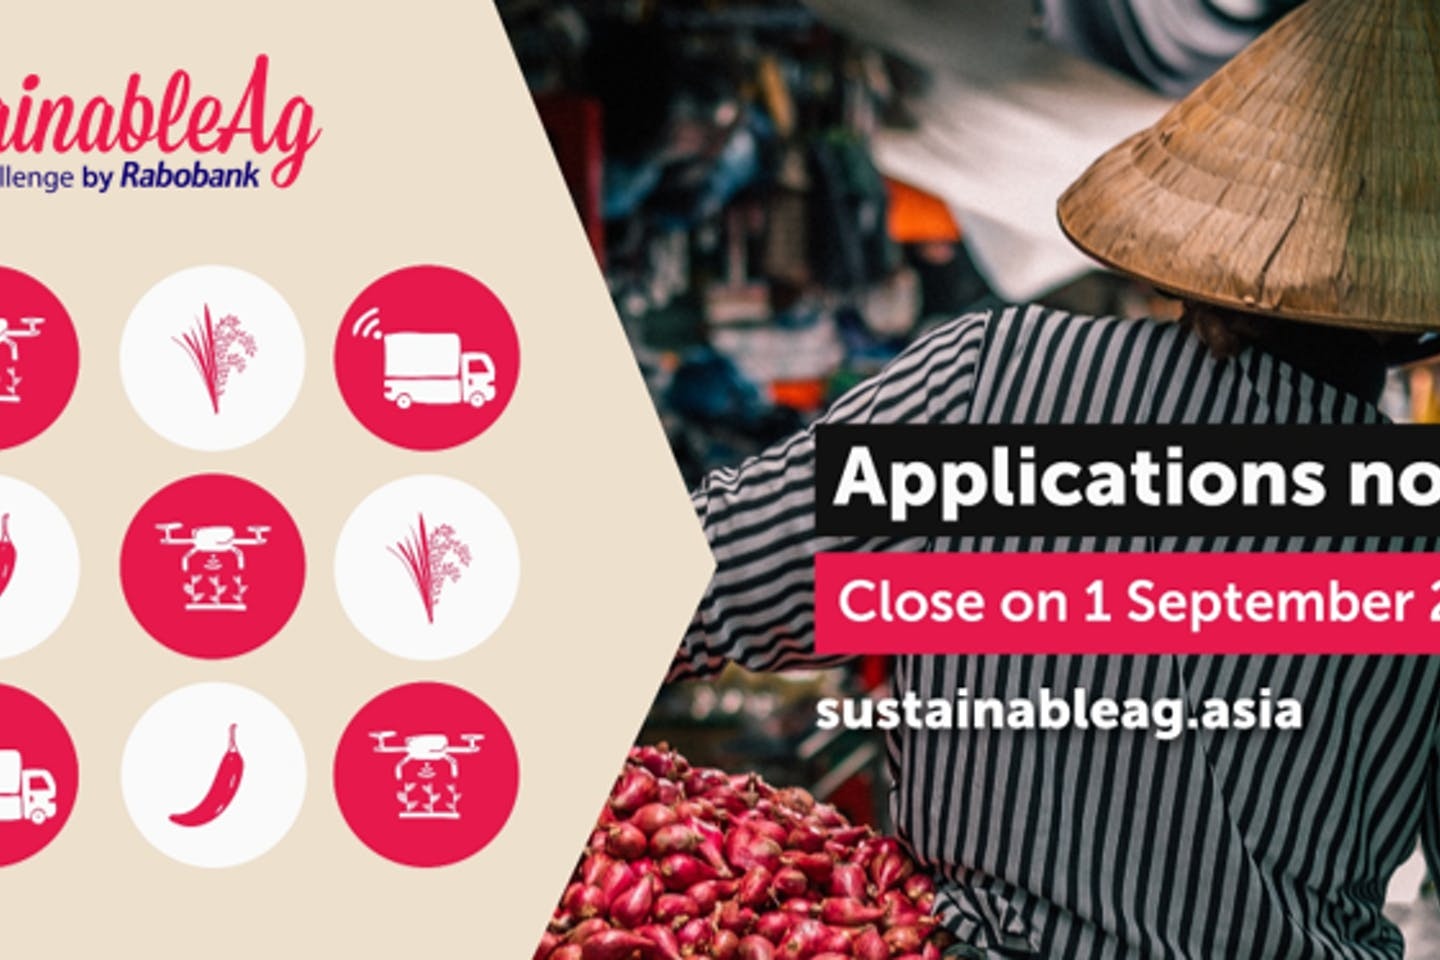 Rabobank launches SustainableAg Asia Challenge for Agtech companies